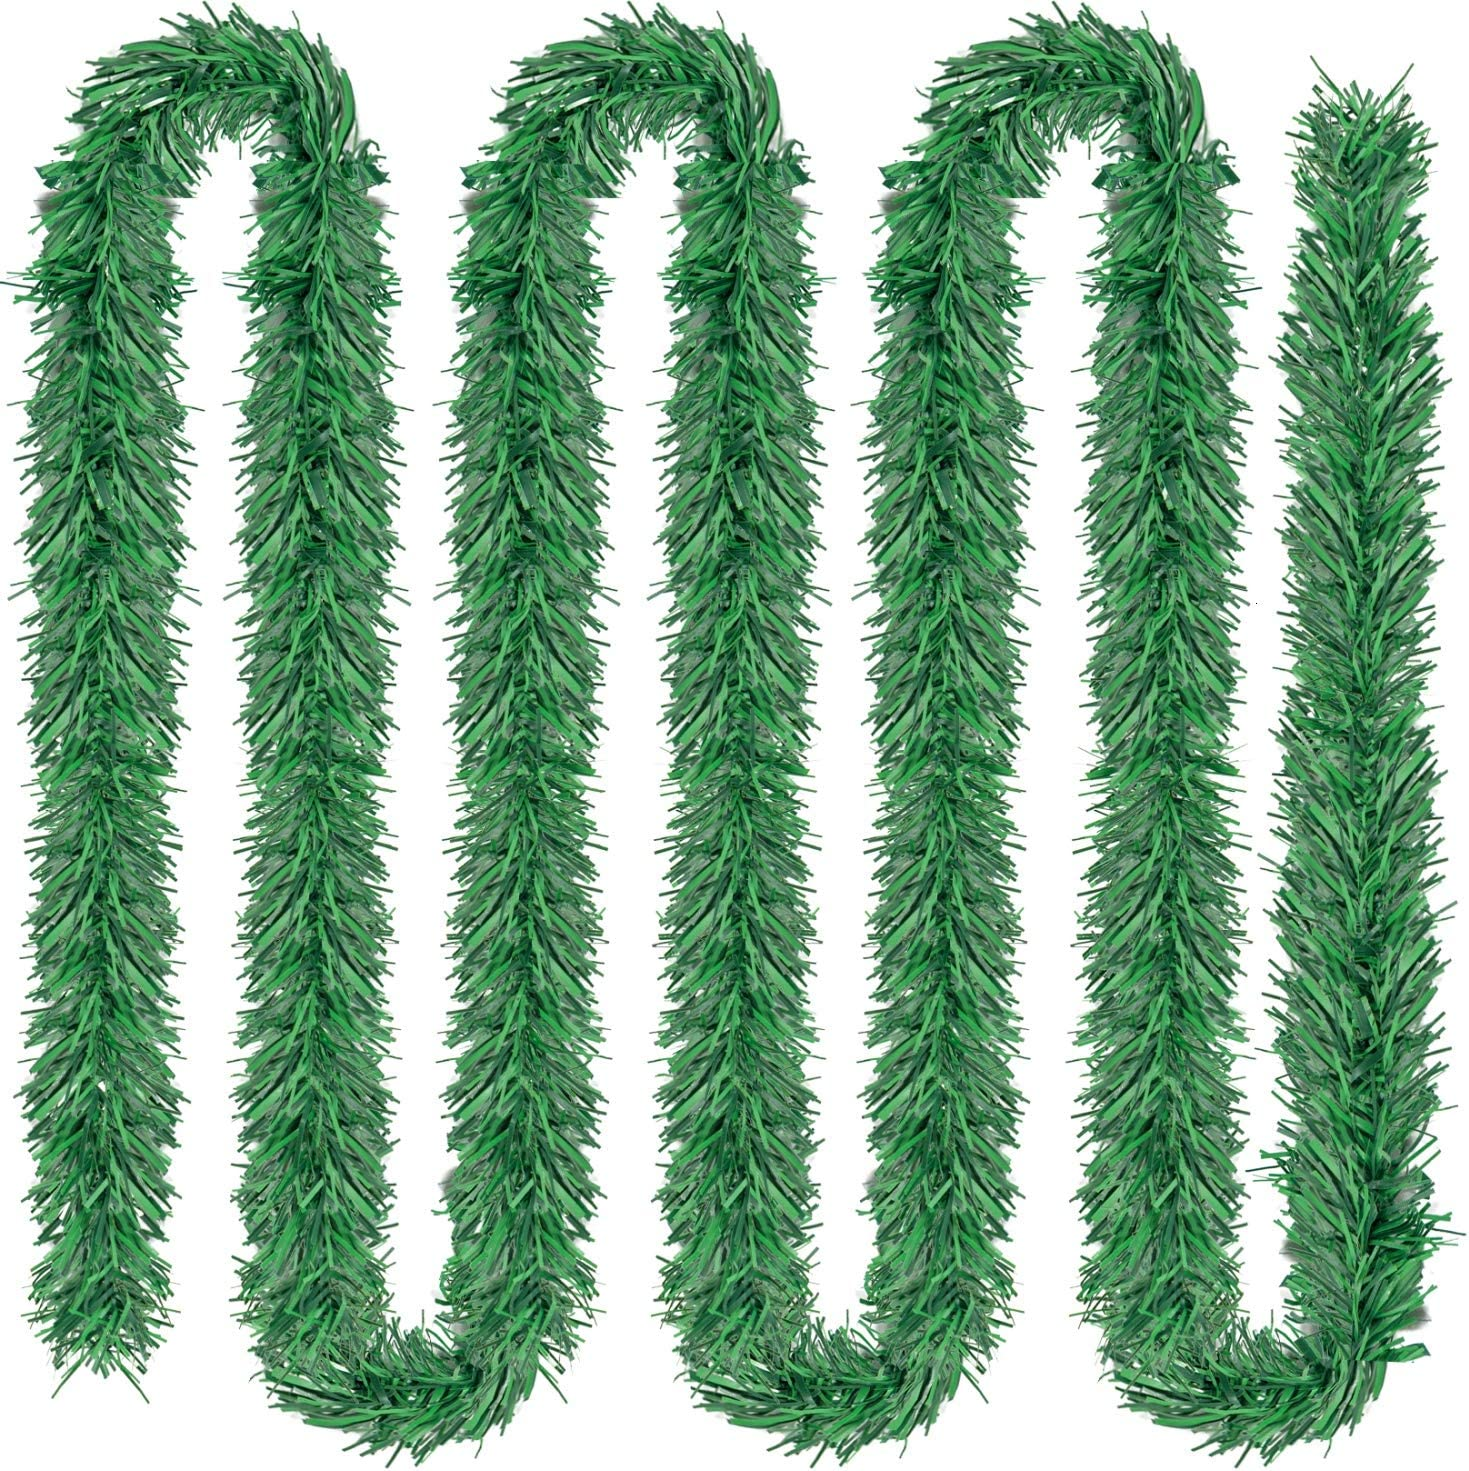 Rocinha 100 Foot Non-Lit Holiday Garland, Christmas Garland Green Holiday Decor for Outdoor or Indoor Use, Artificial Pine Garland Soft Greenery Garland for Holiday Wedding Party Decoration